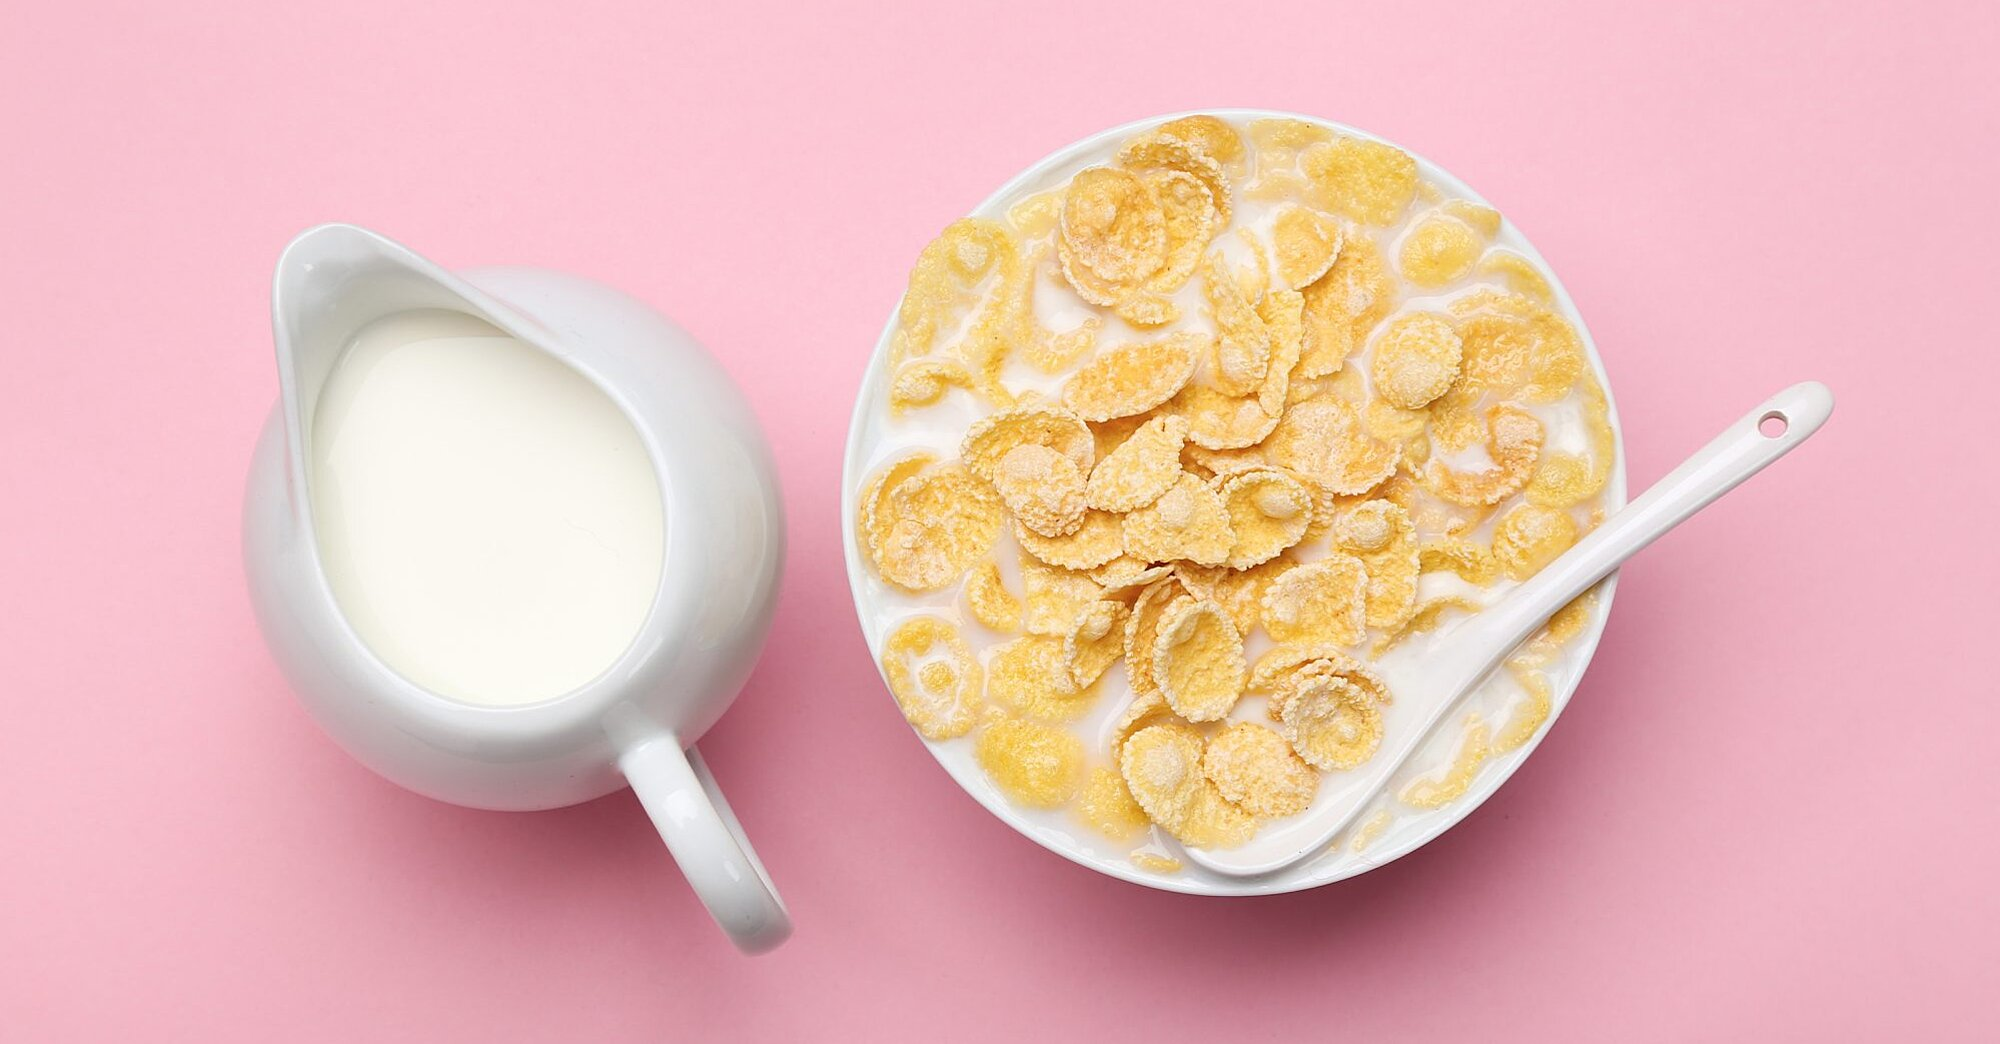 This Is the Secret to Finding a Healthy Breakfast Cereal, According to RDs